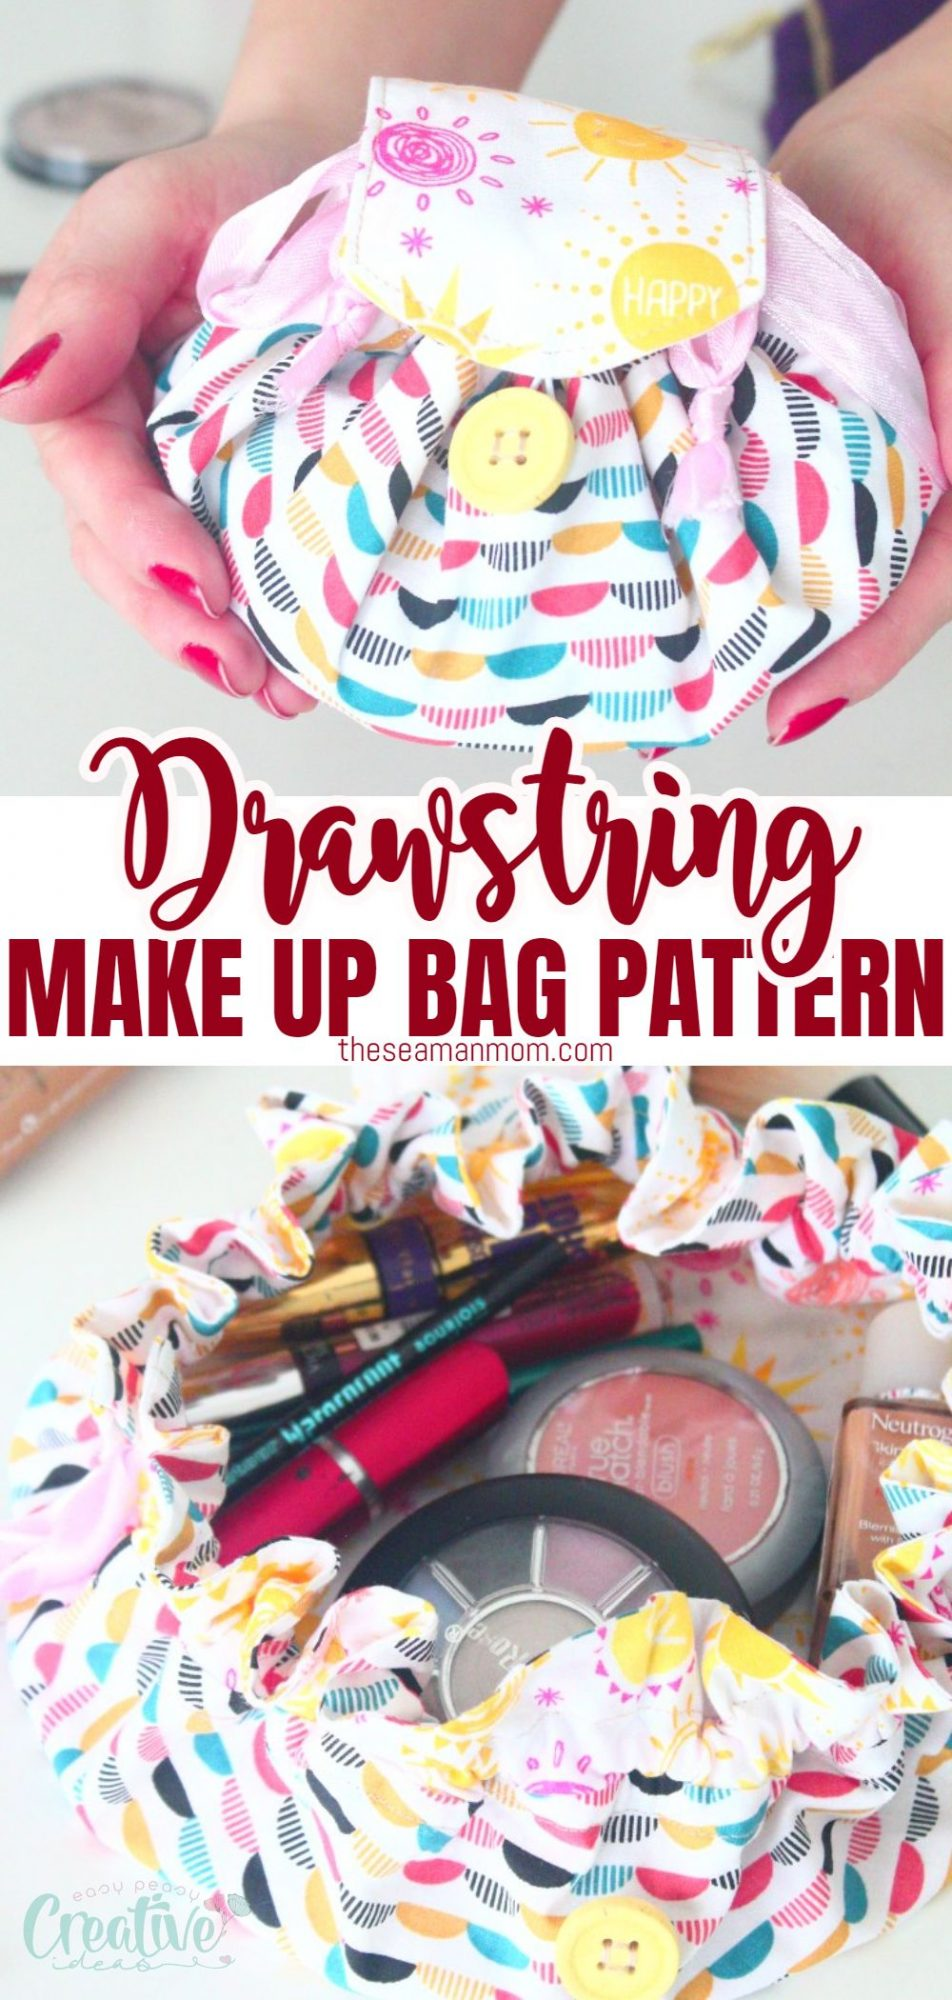 Makeup bag pattern